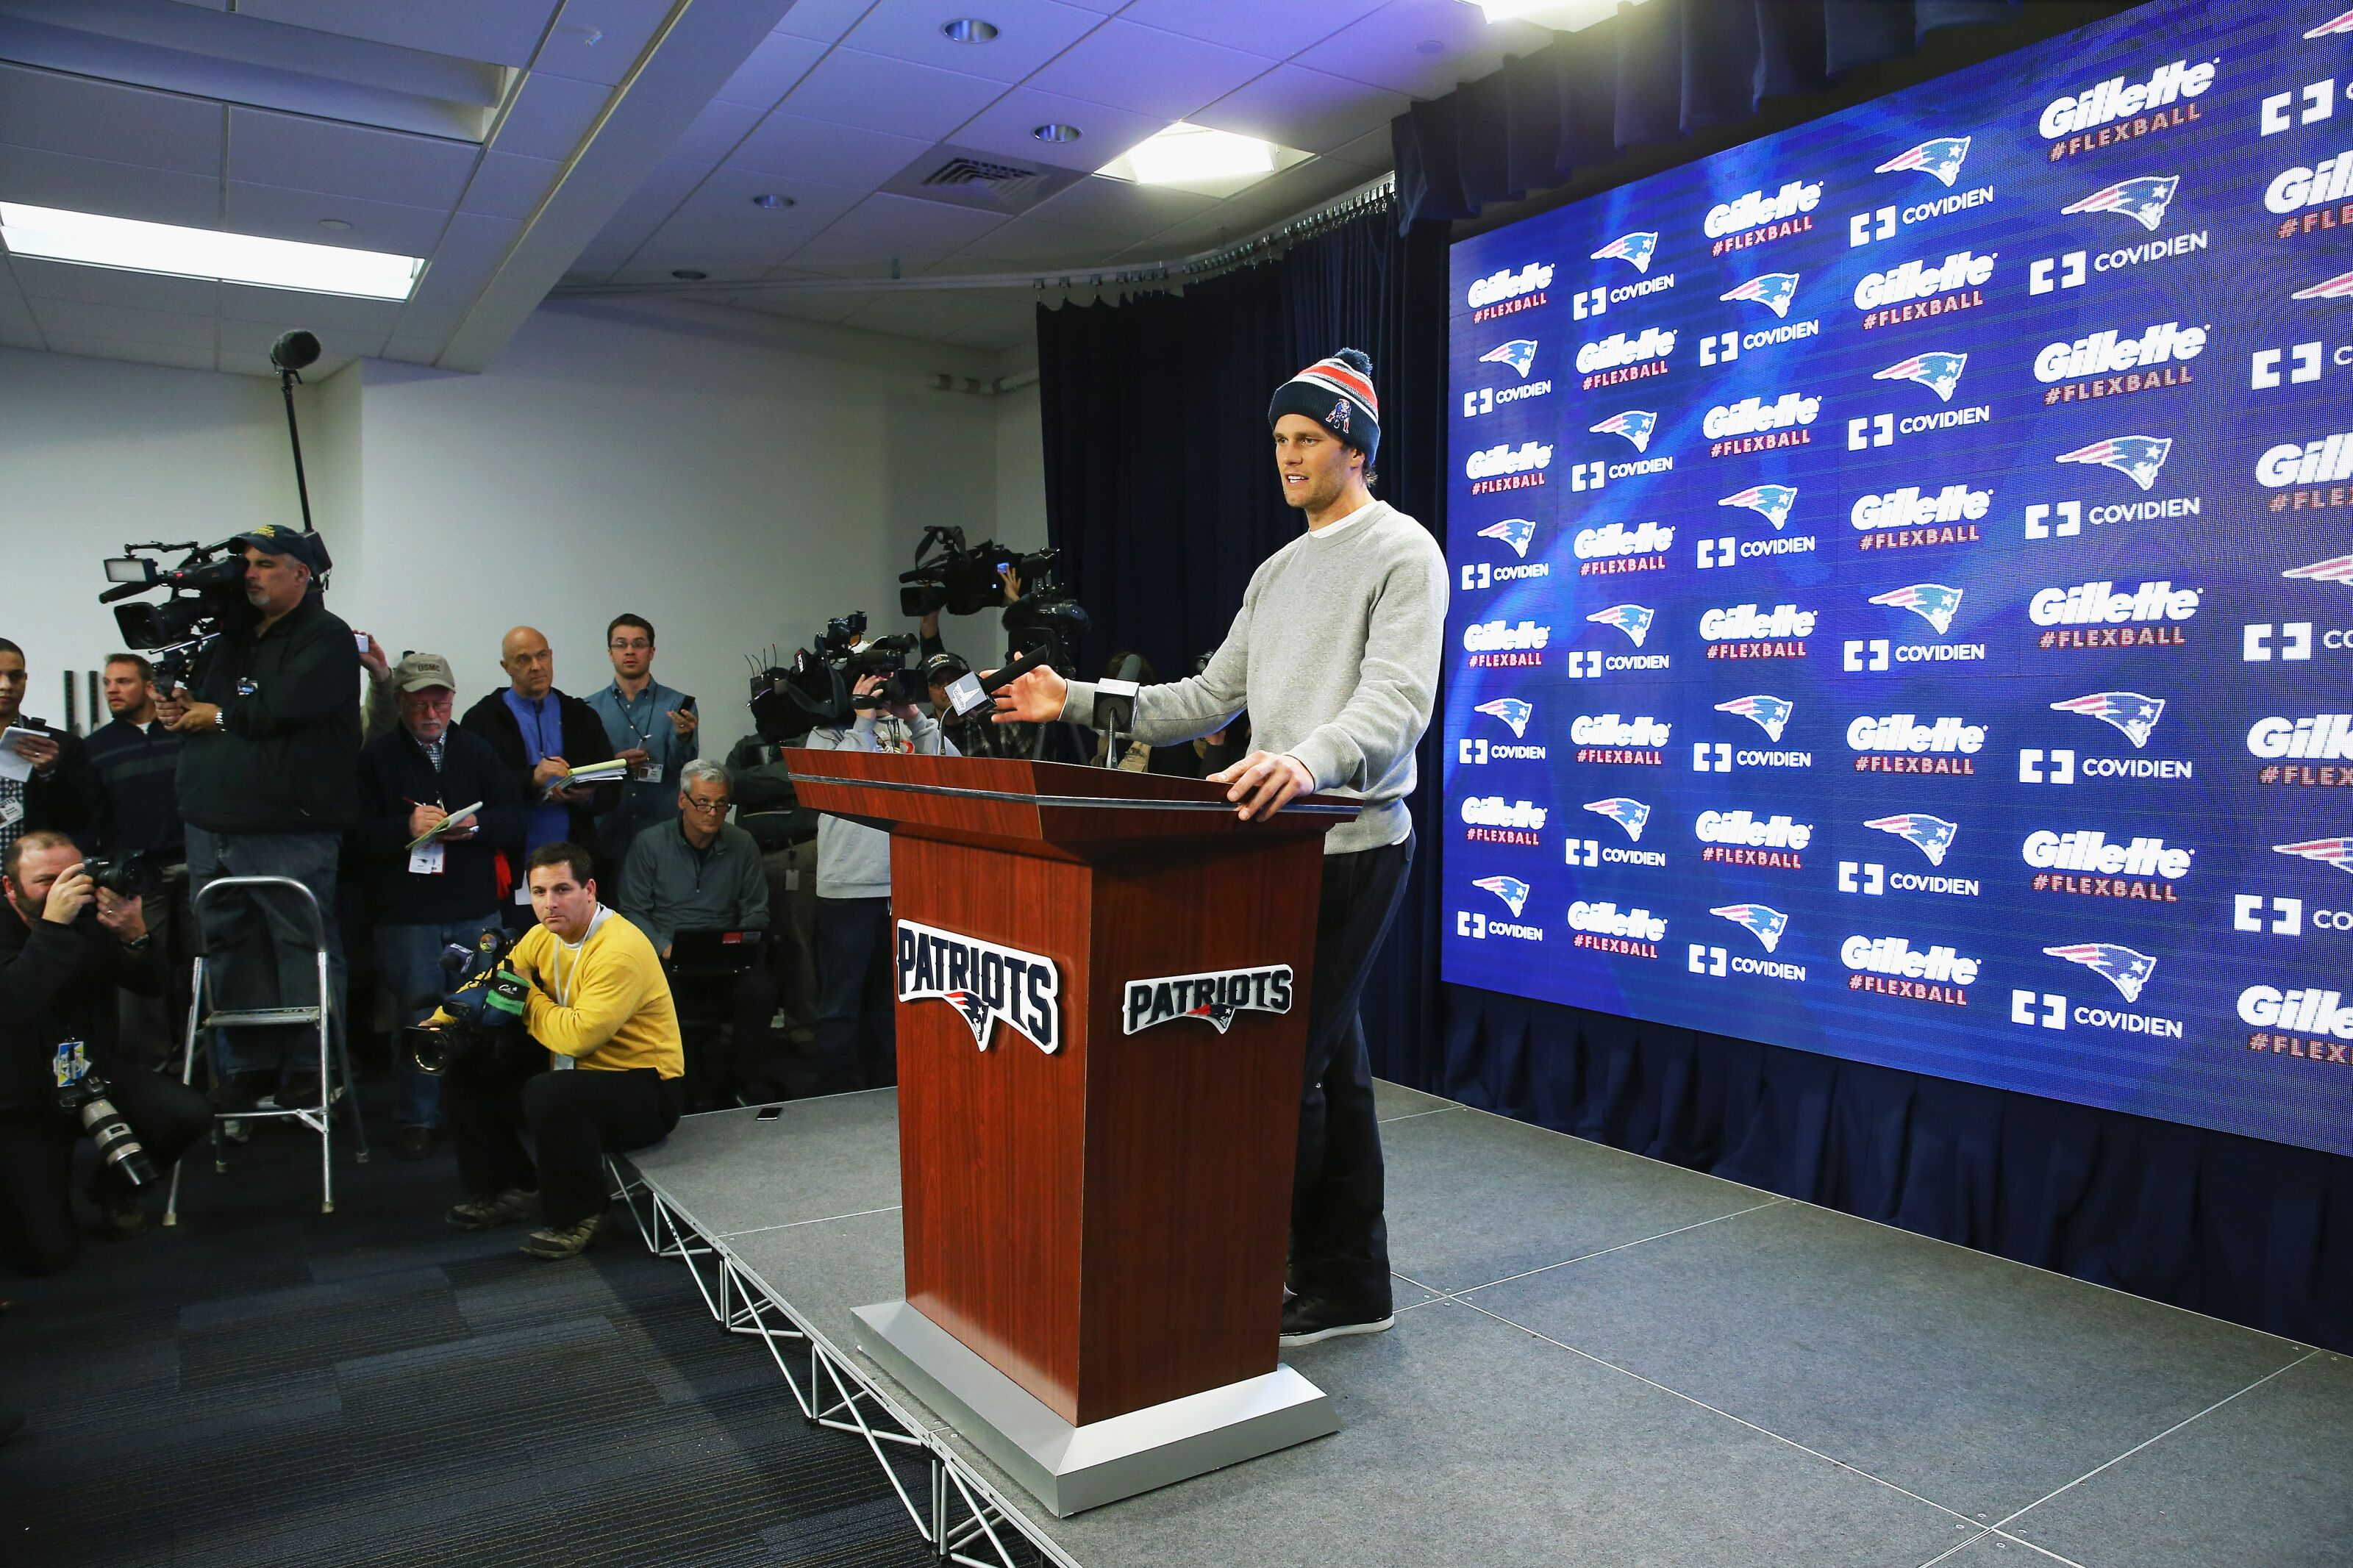 New England Patriots: The Tom Brady saga created by the media